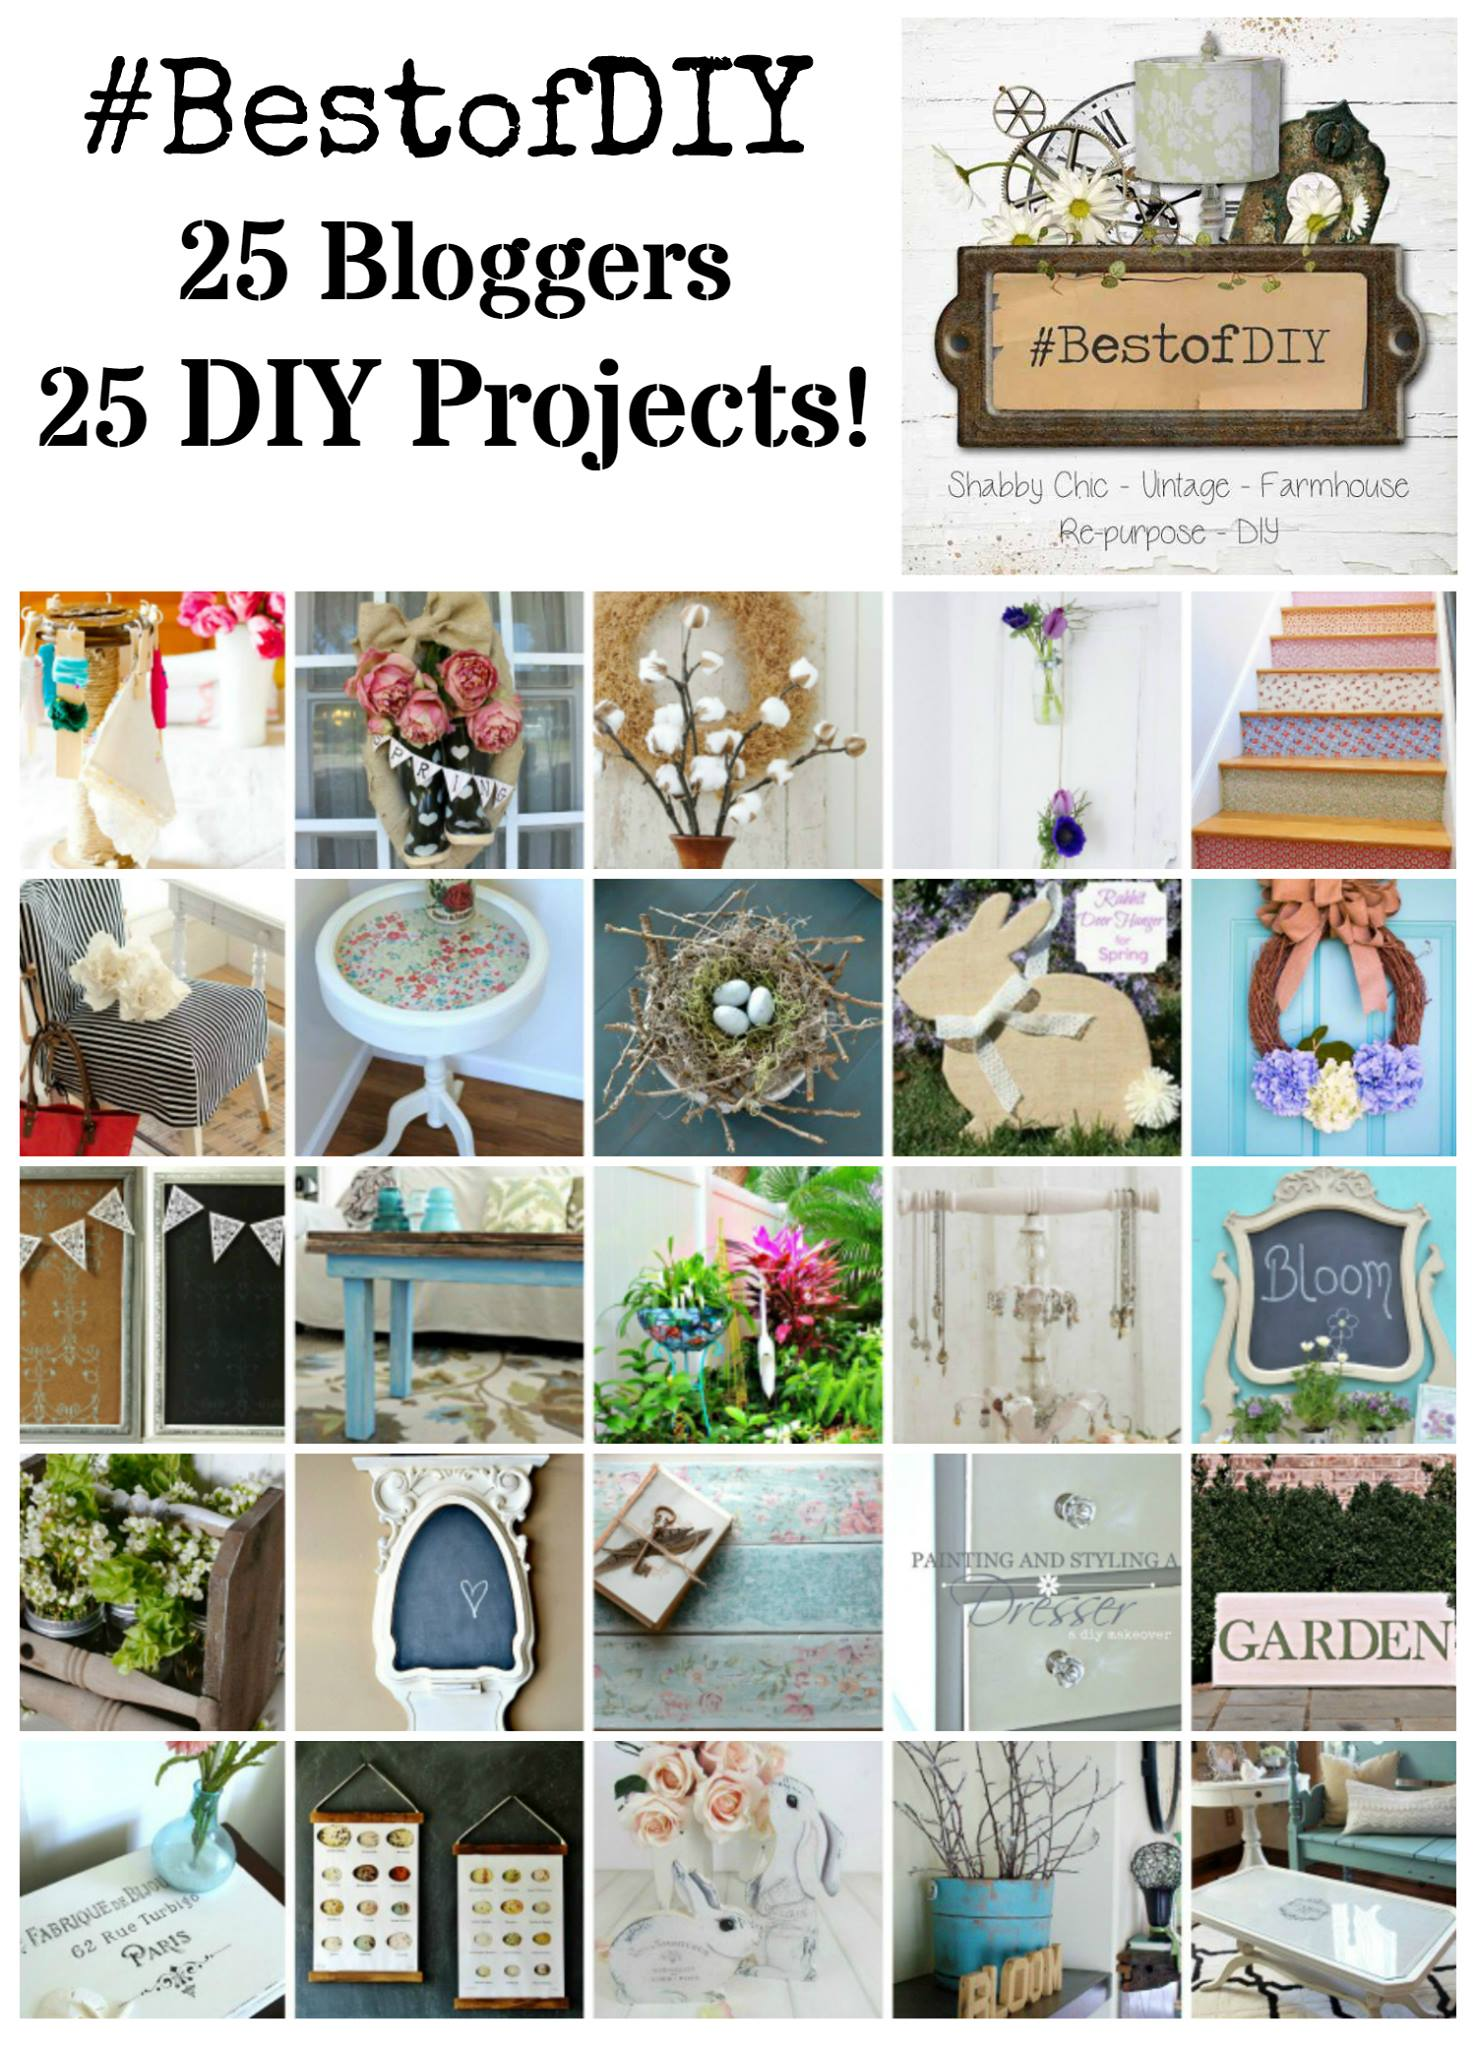 Best of DIY projects